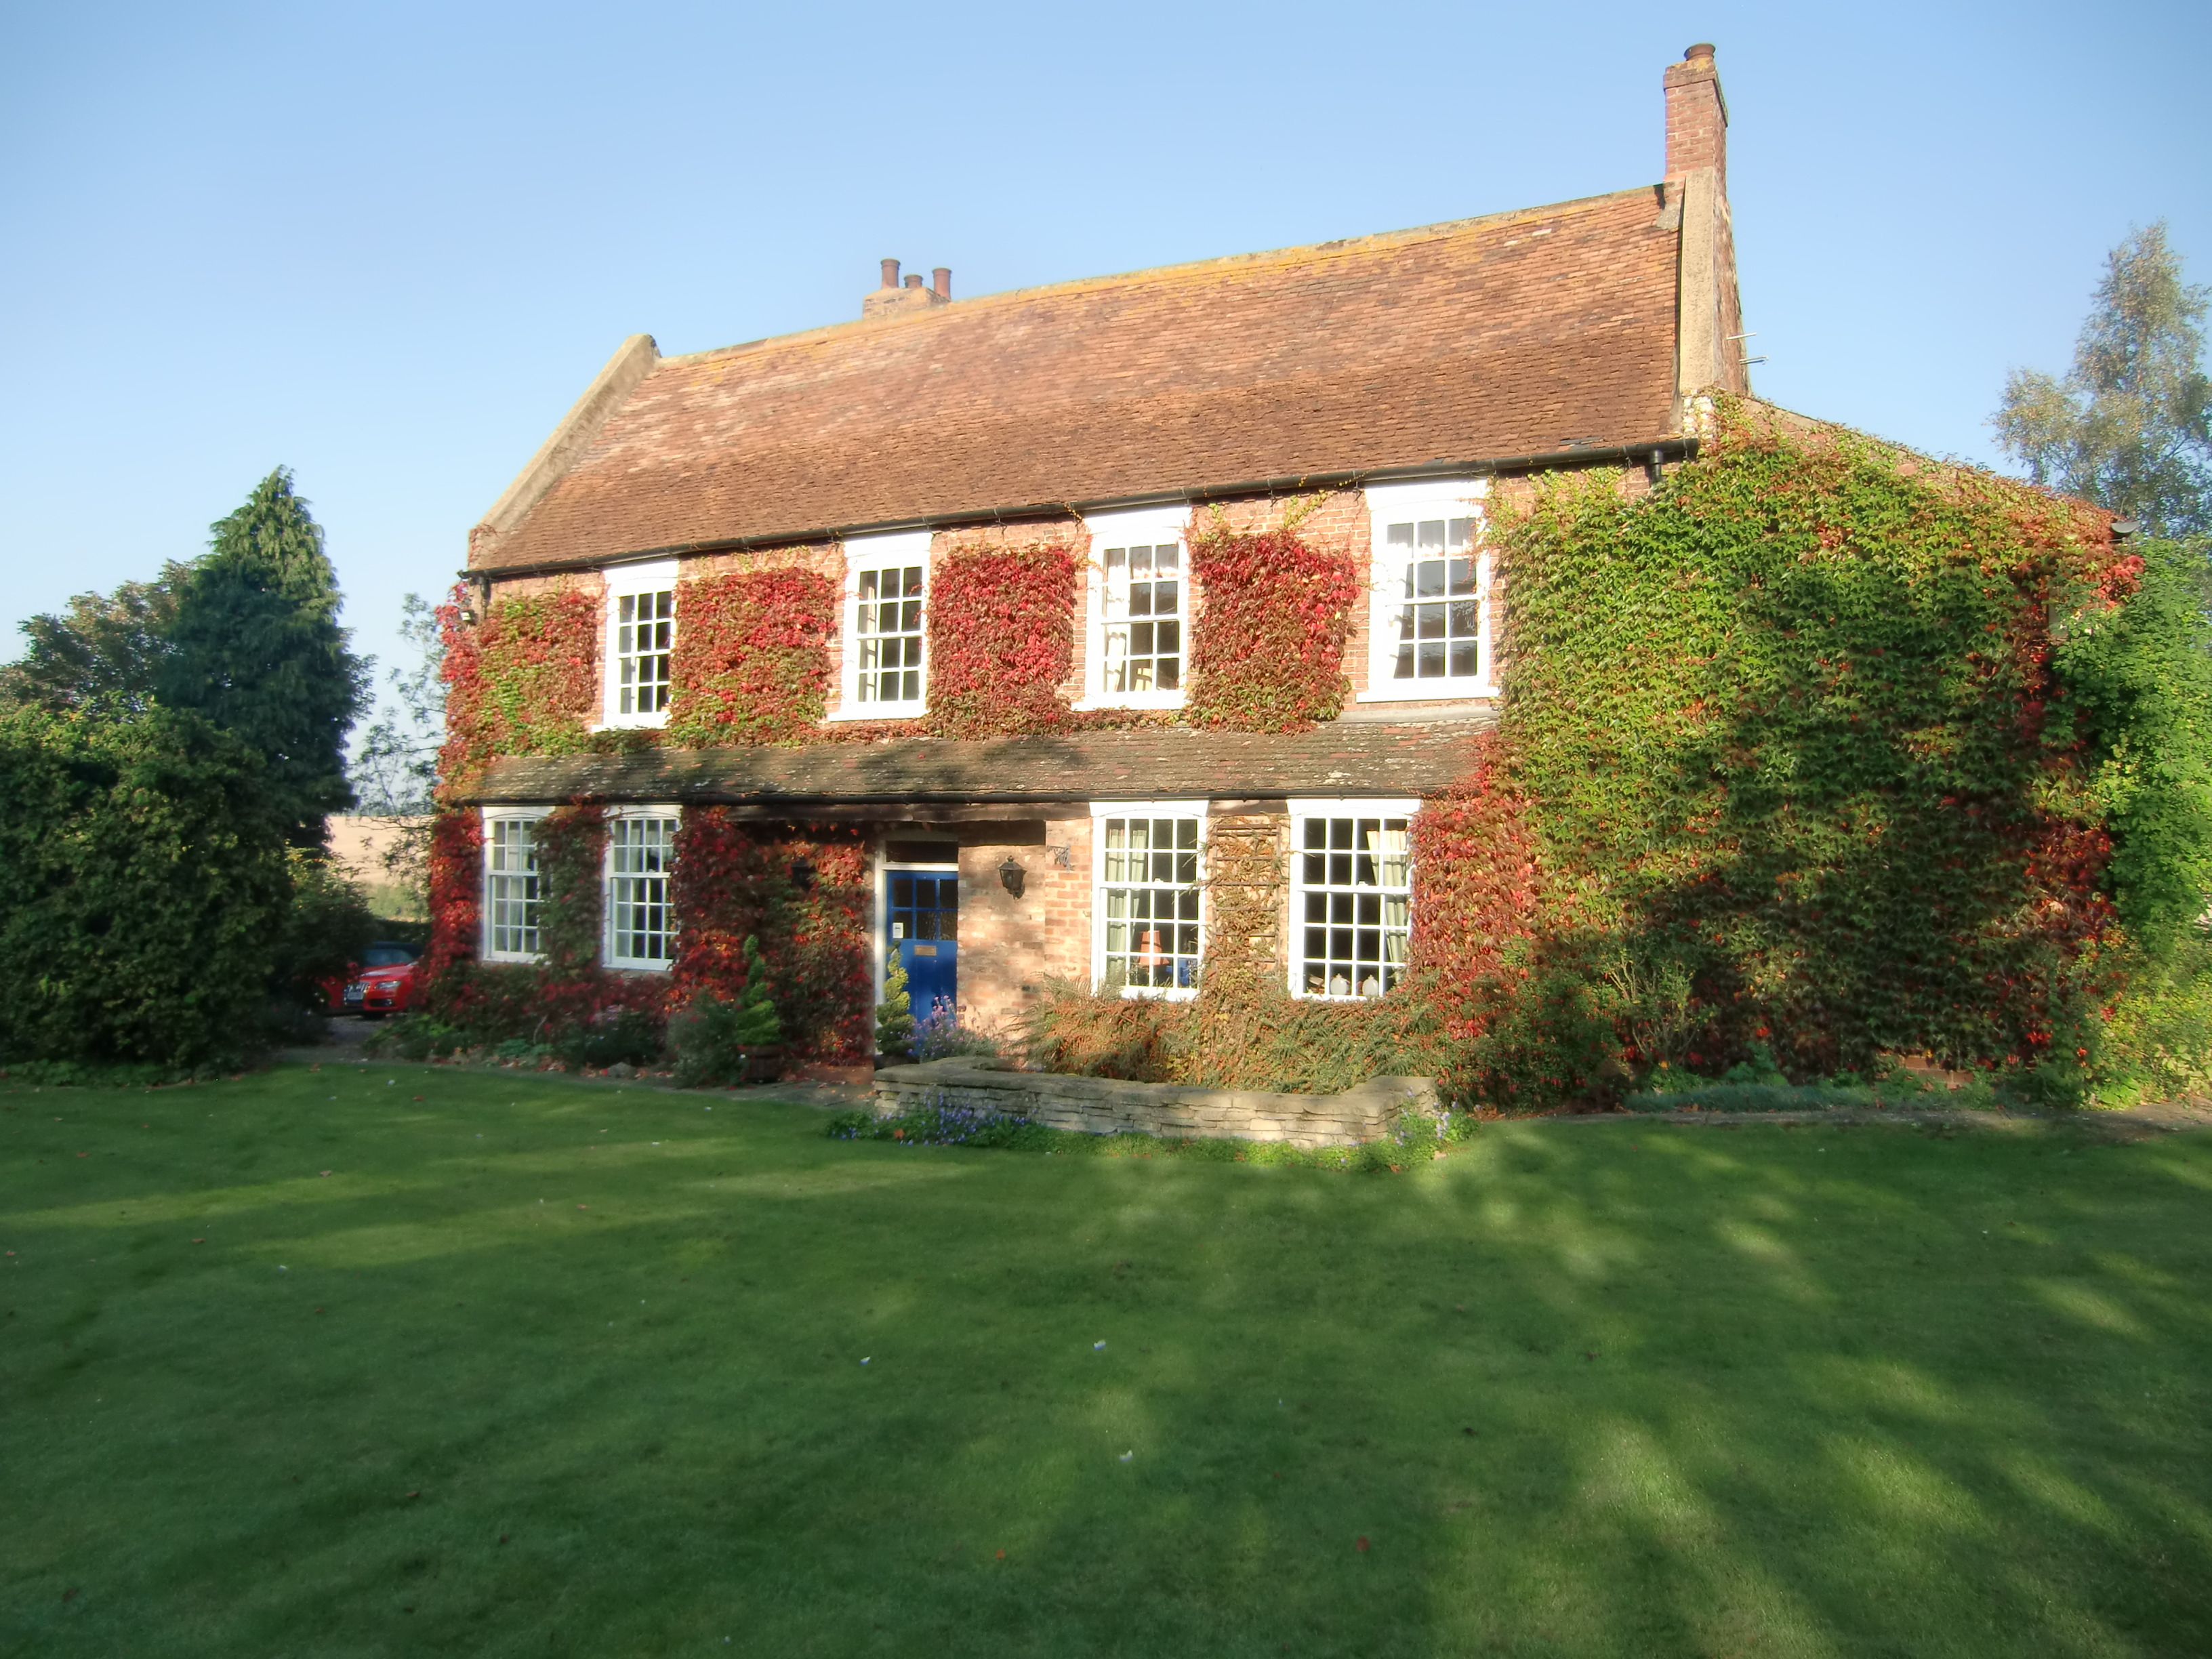 The Old Farmhouse Bed And Breakfast The Old Farmhouse B Andb Countryside Bed And Breakfast Grimsby